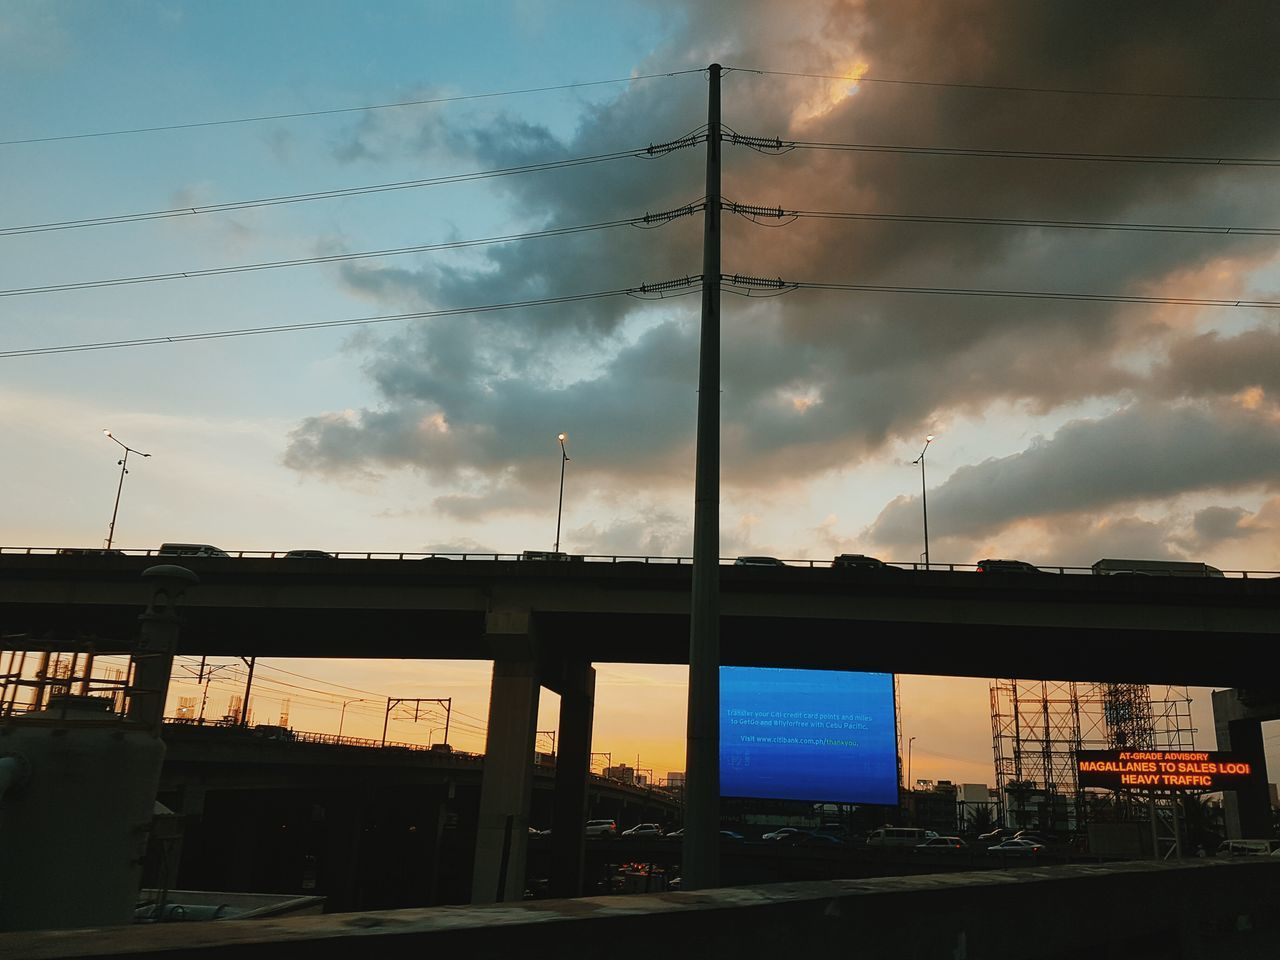 sky, cloud - sky, built structure, architecture, building exterior, connection, transportation, sunset, outdoors, cable, no people, electricity pylon, land vehicle, day, city, nature, tree